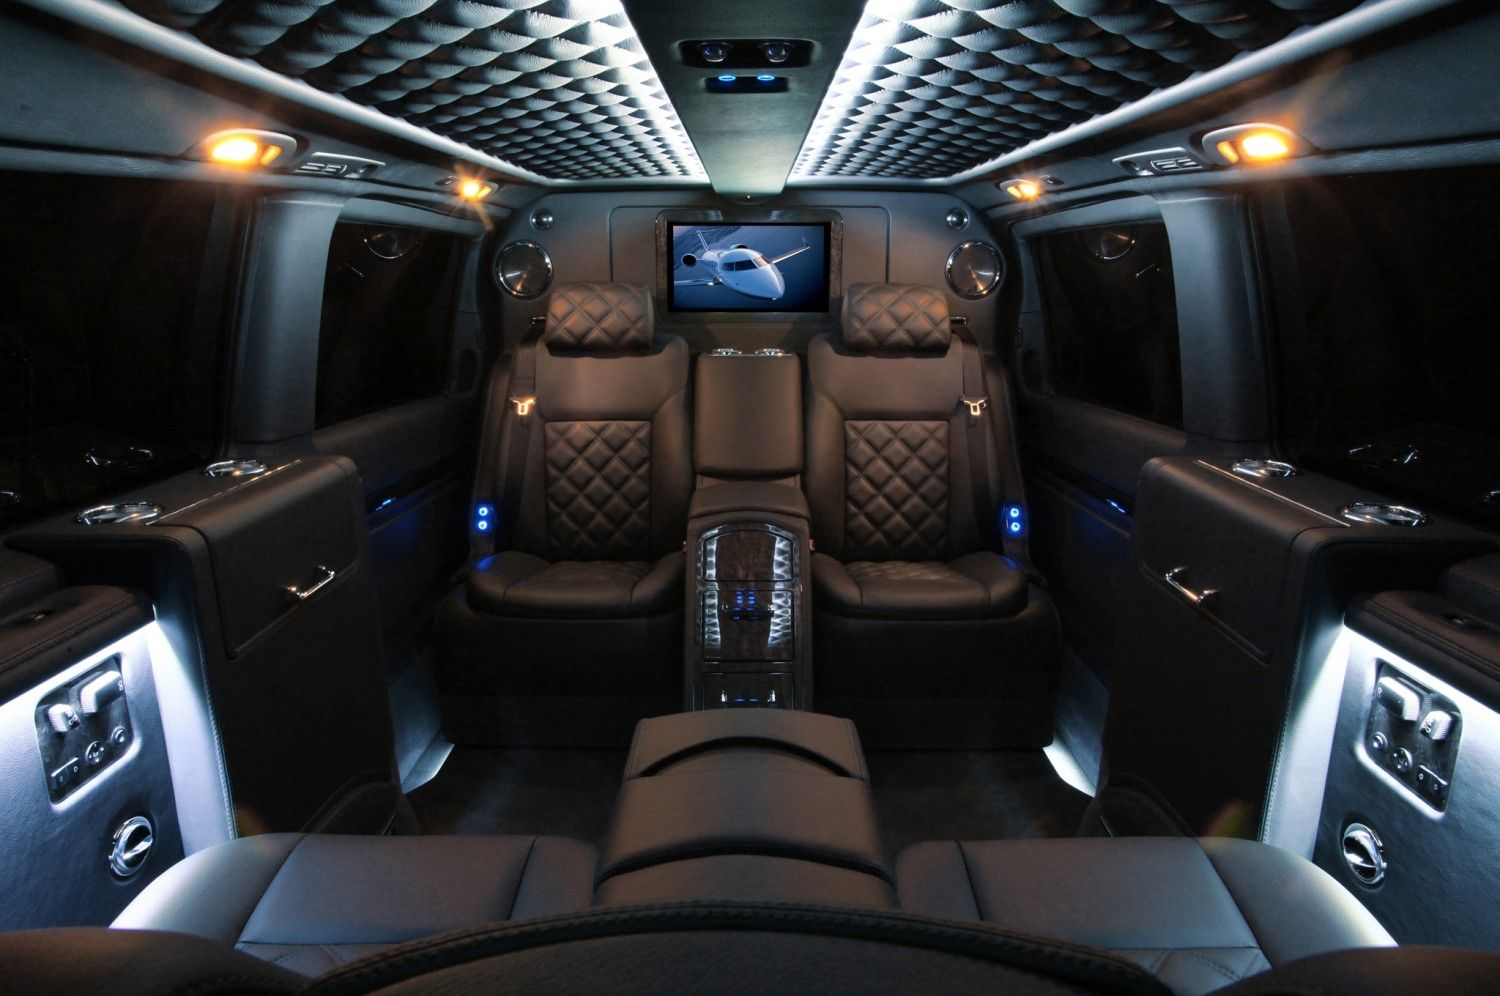 Mercedes Benz Viano Van Conversion Is The Lap Of Luxury With